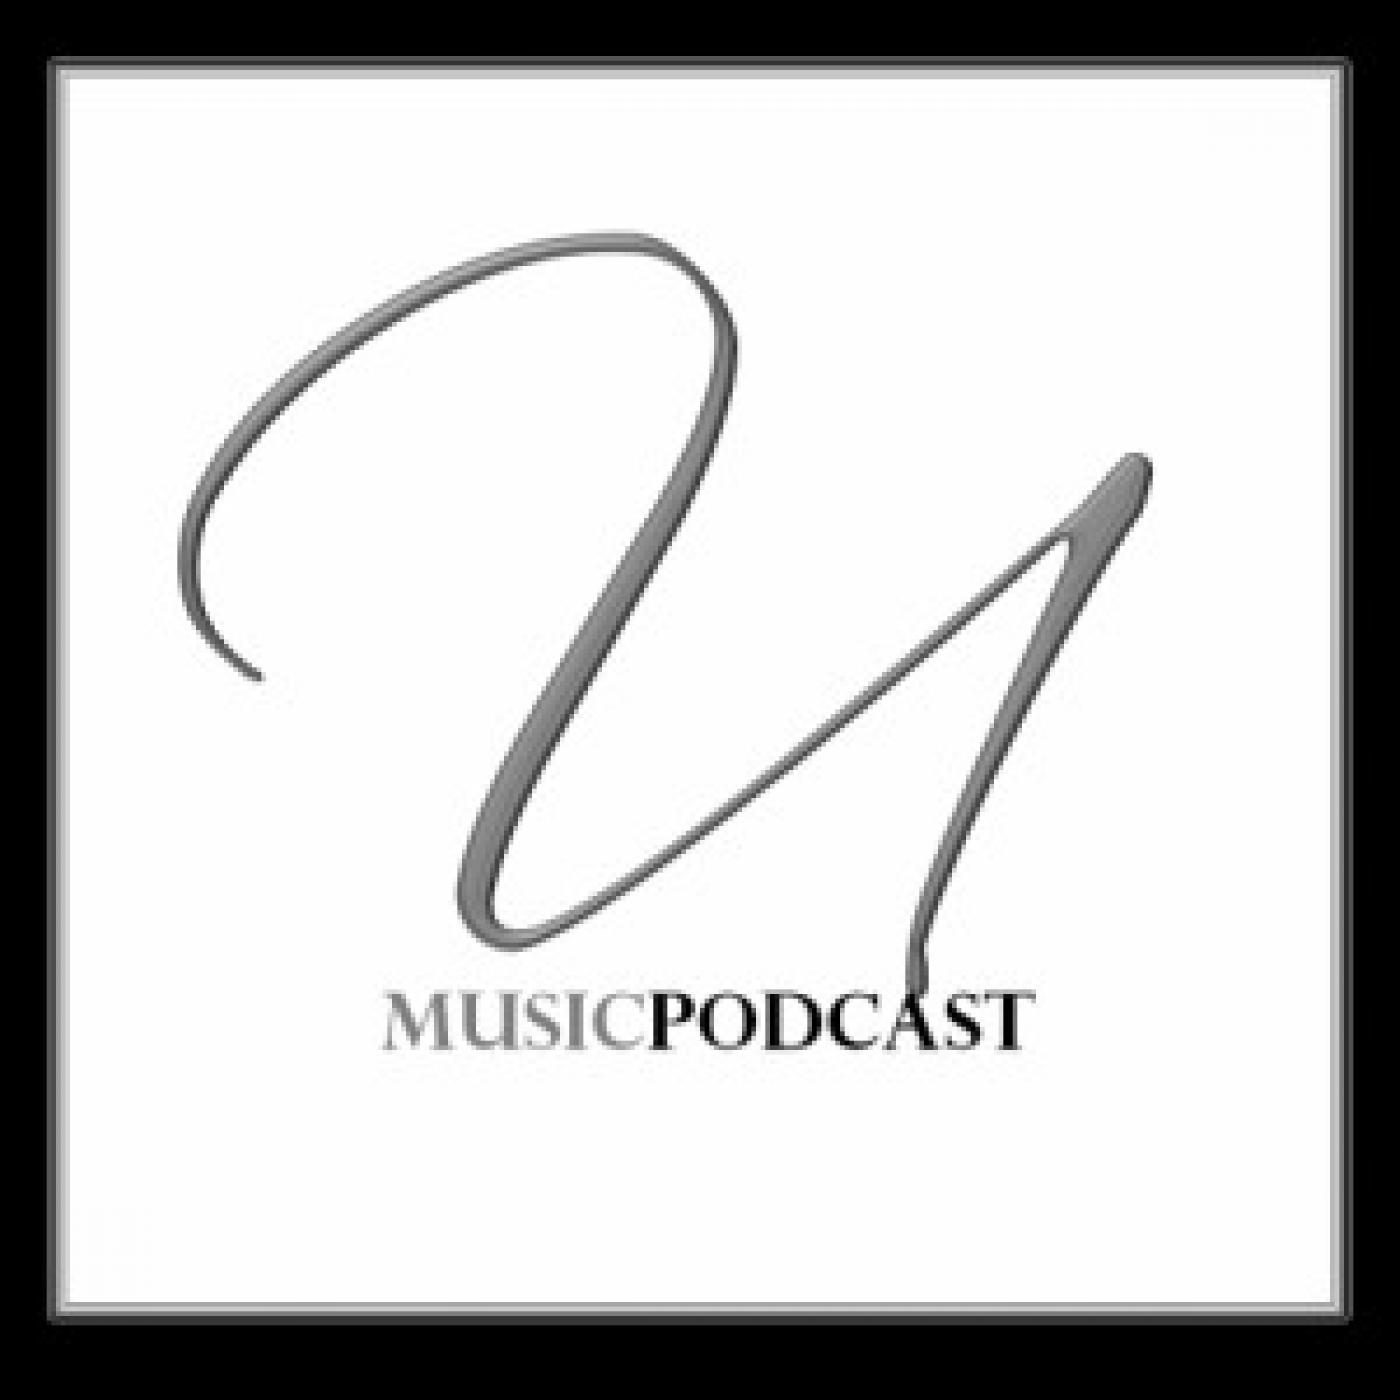 all-podcasts-dataset/u.tsv at master · ageitgey/all-podcasts-dataset ...